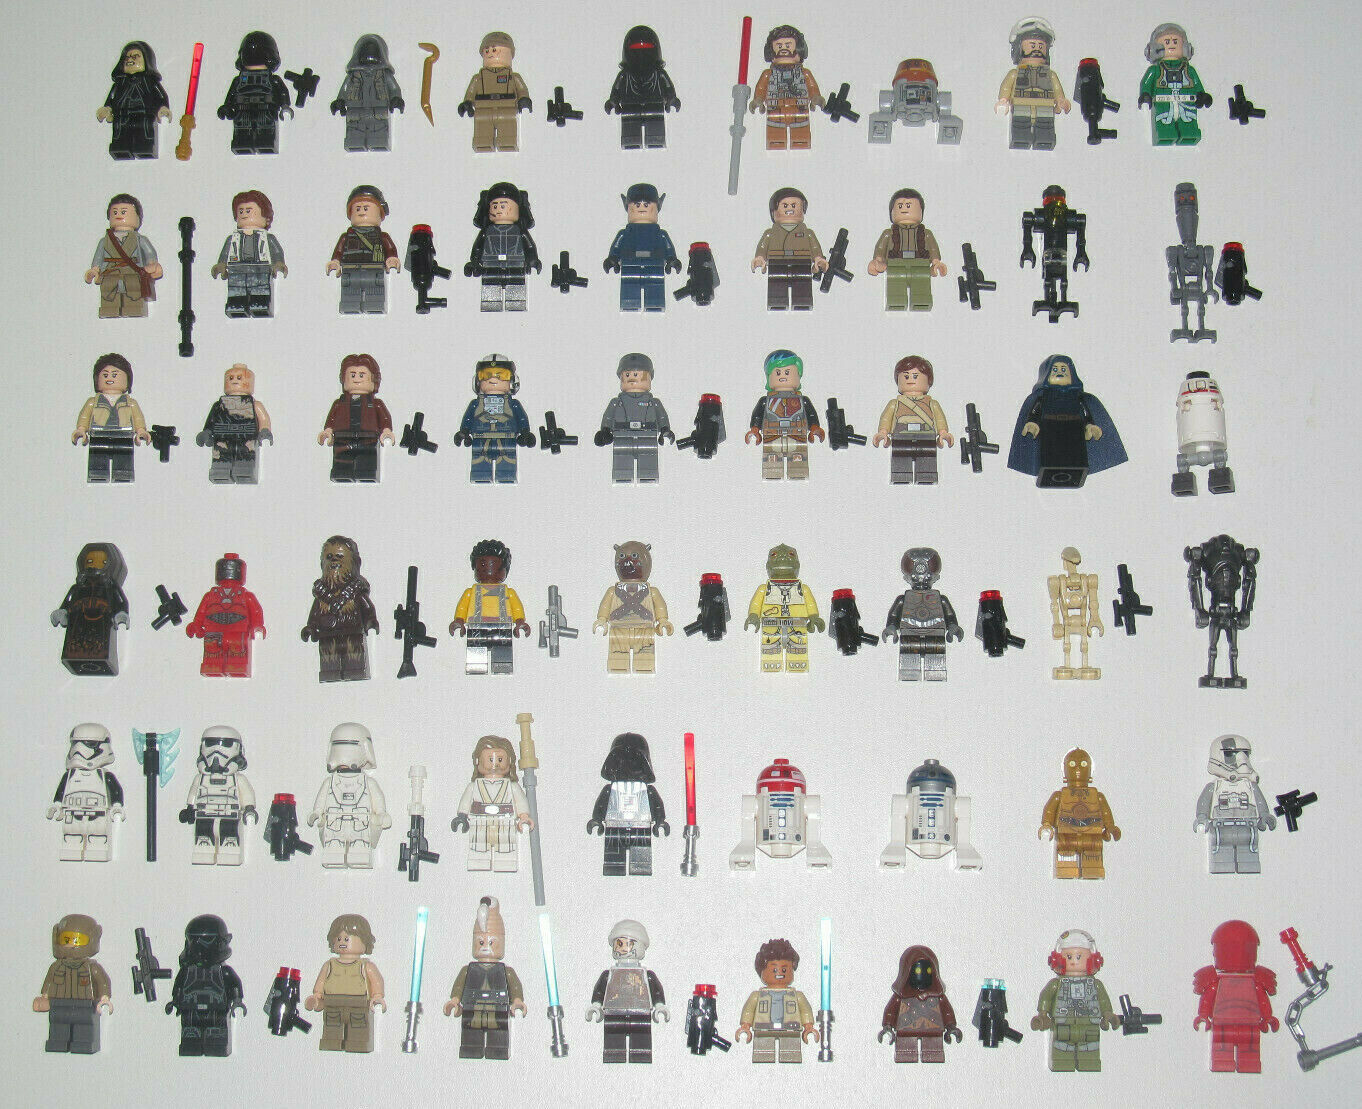 Lego star wars minifigure personnage choose original - Personnage star wars lego ...